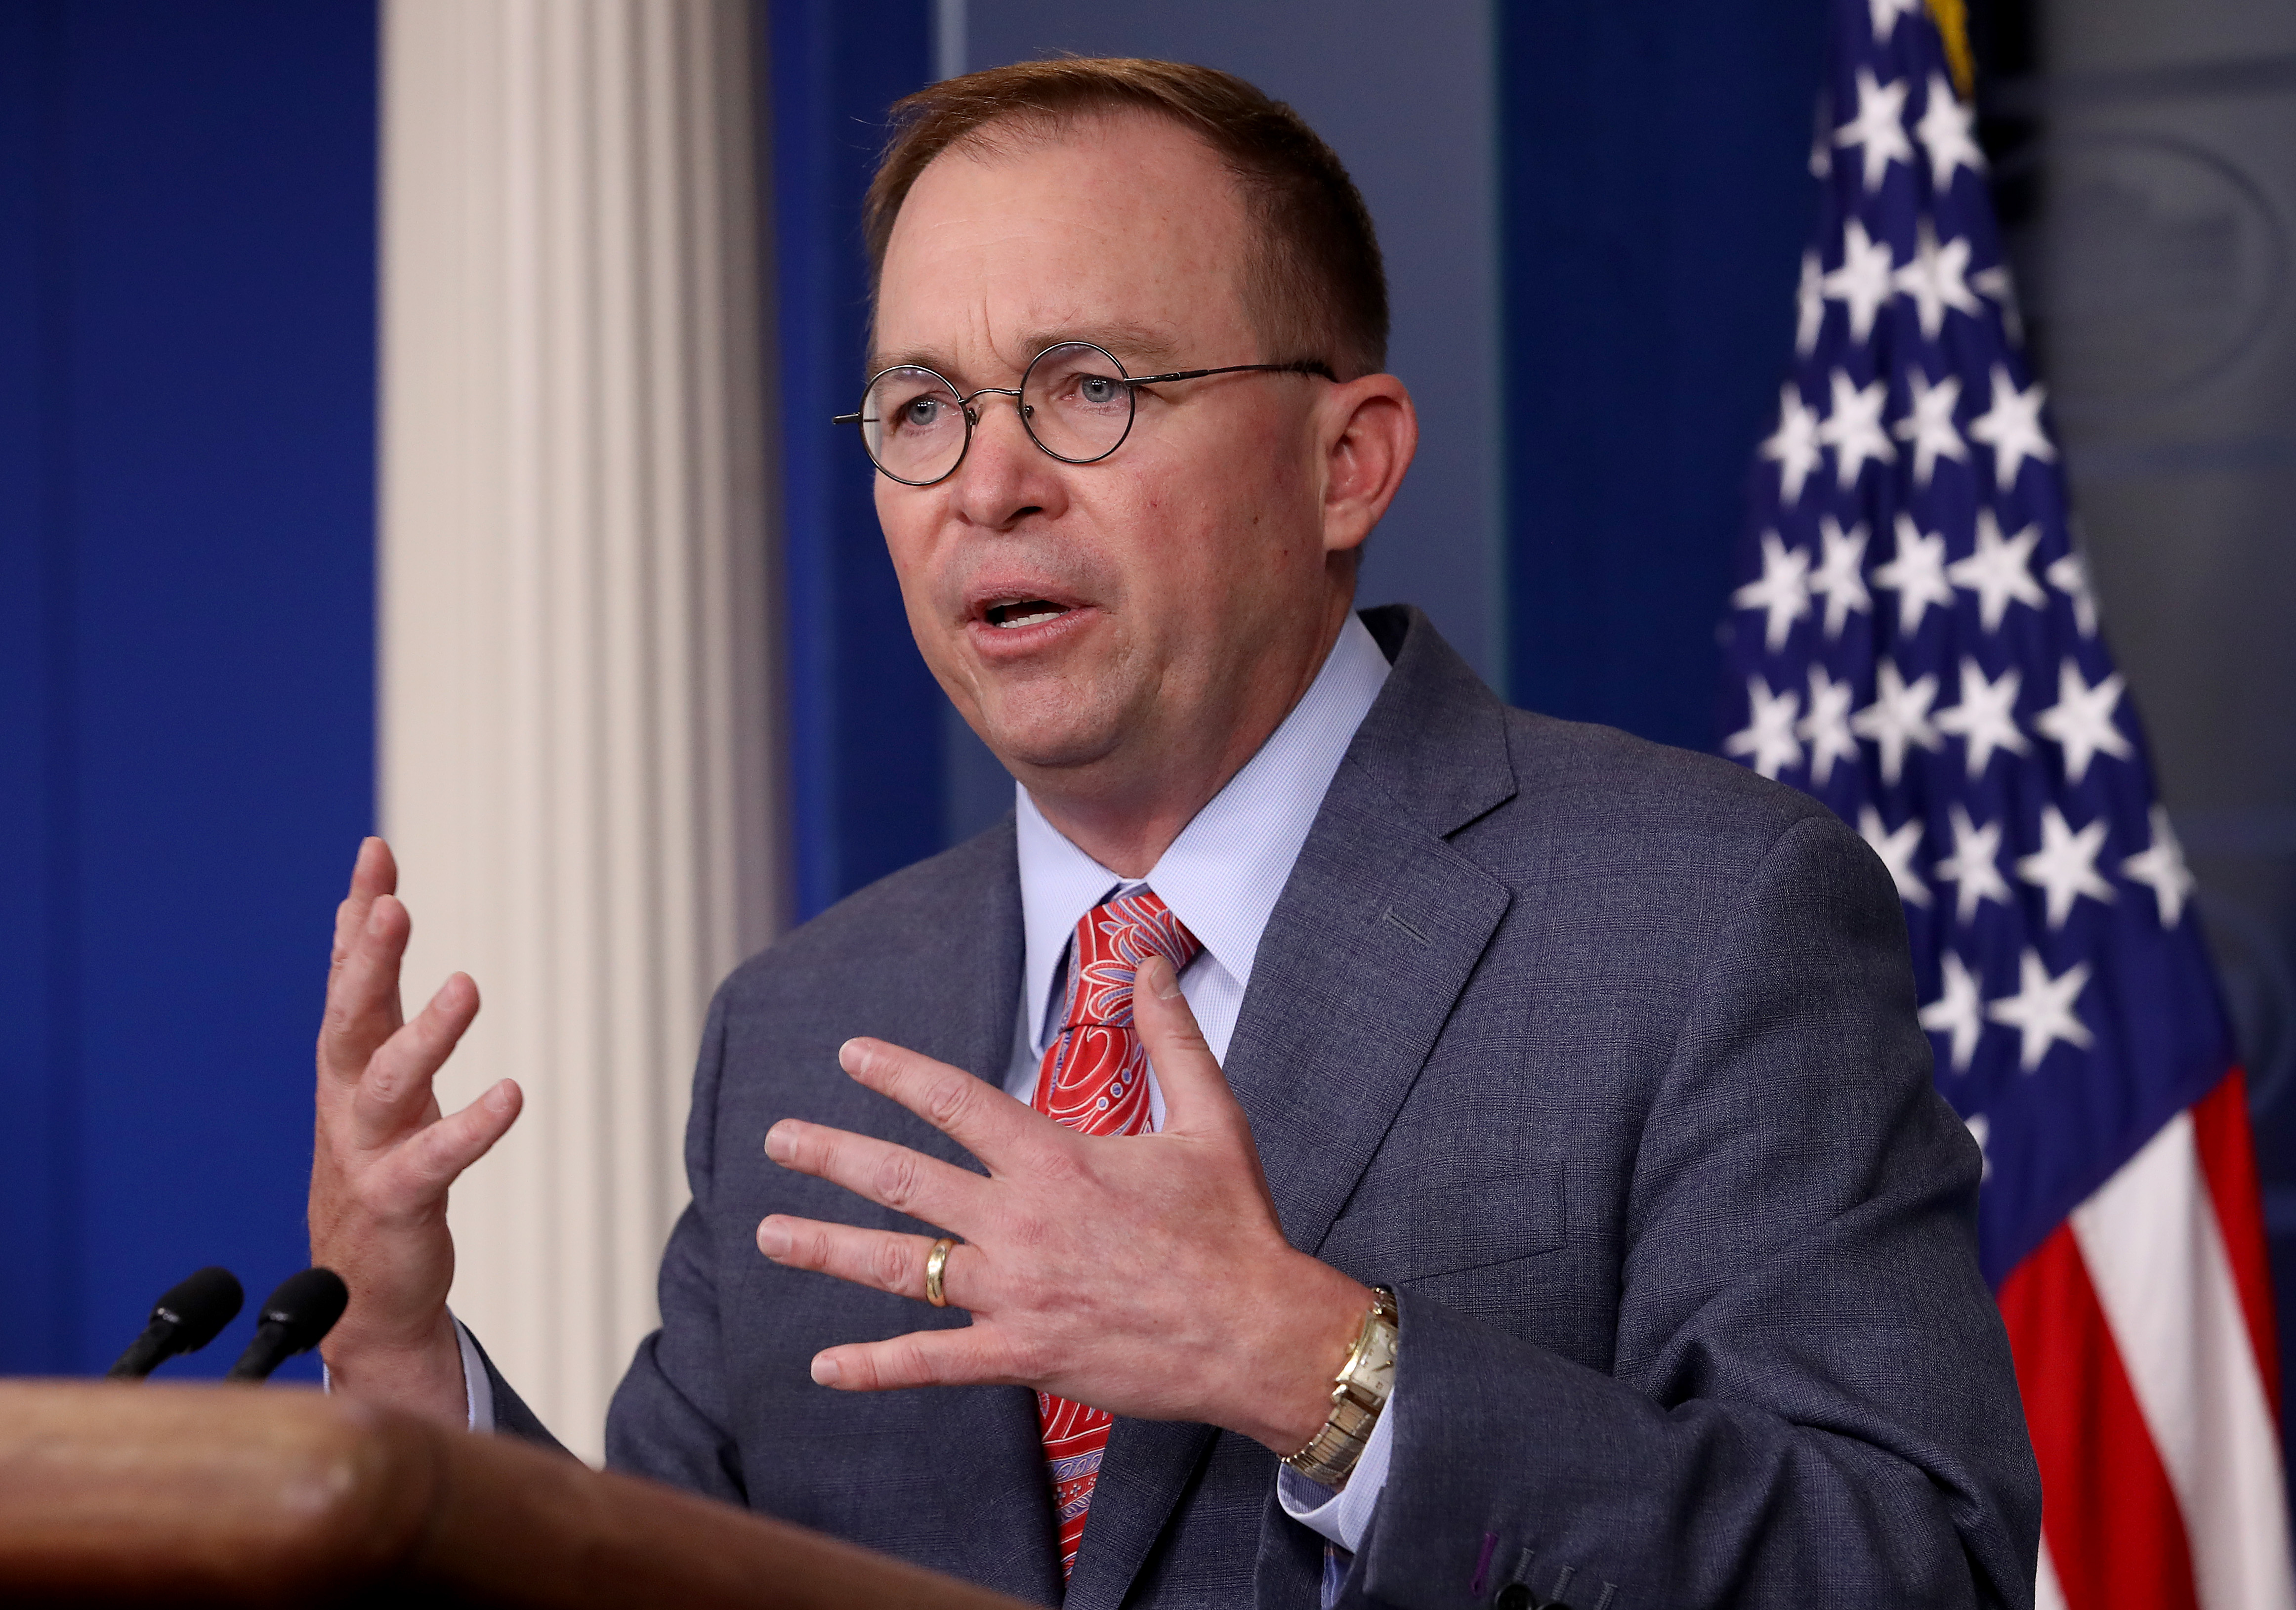 Trump is in the hospitality business, Mulvaney says, after president reverses plan to host summit at his golf club